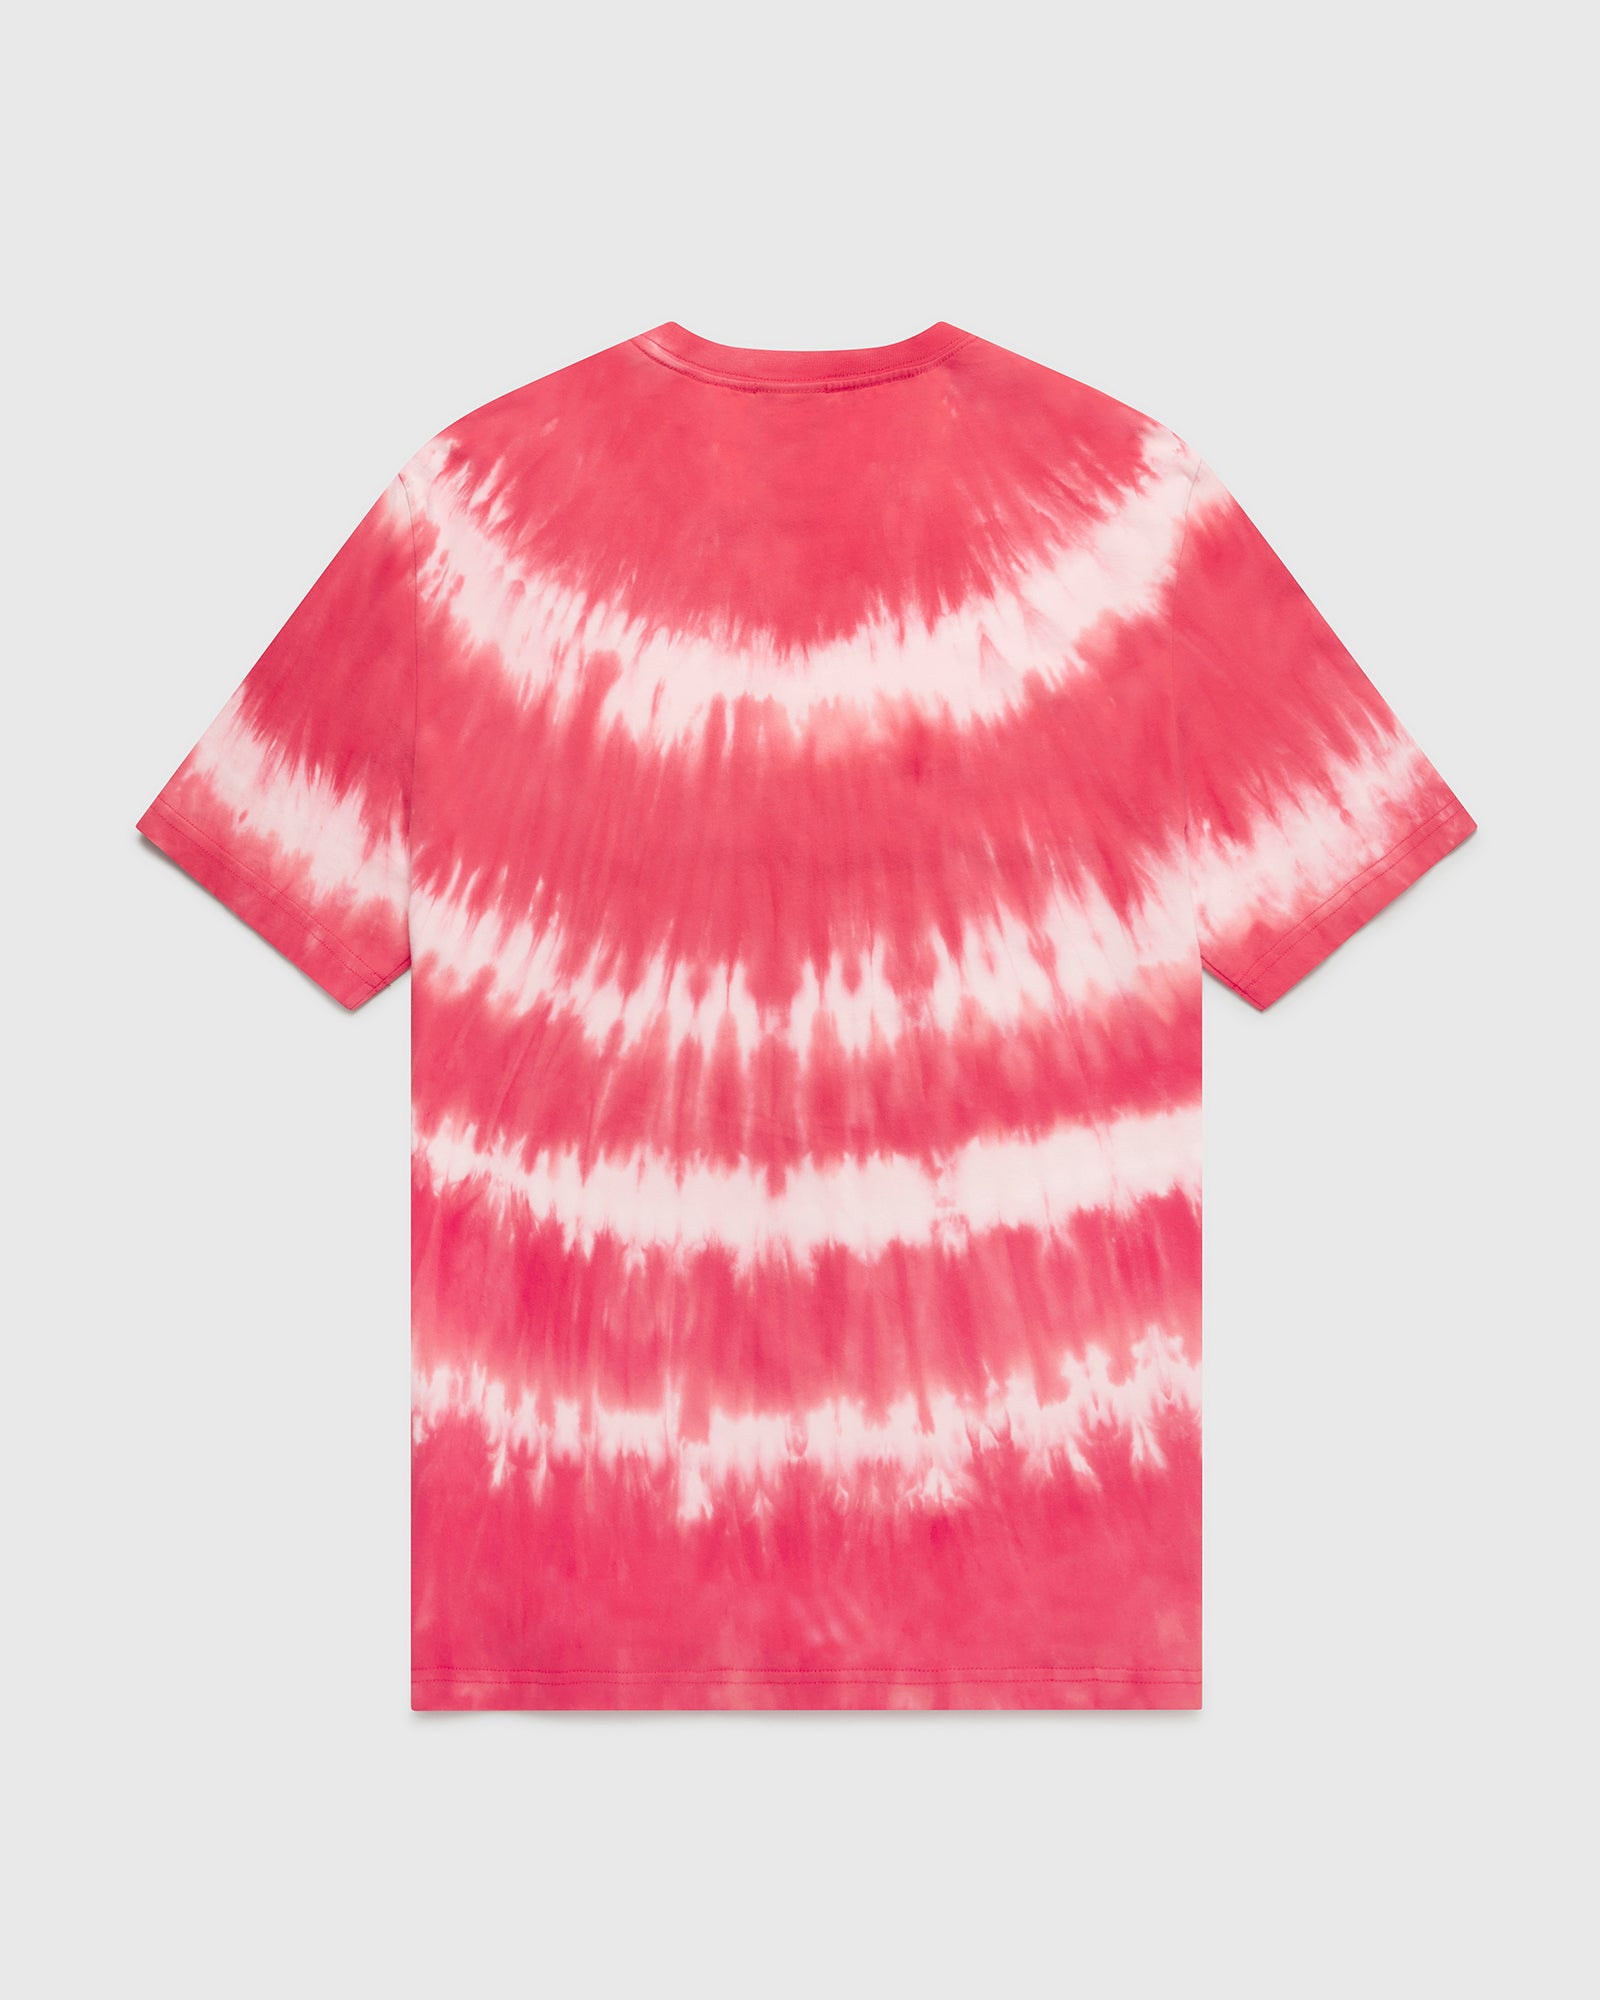 OVO MARBLE TIE DYE T-SHIRT - RED/PINK IMAGE #2